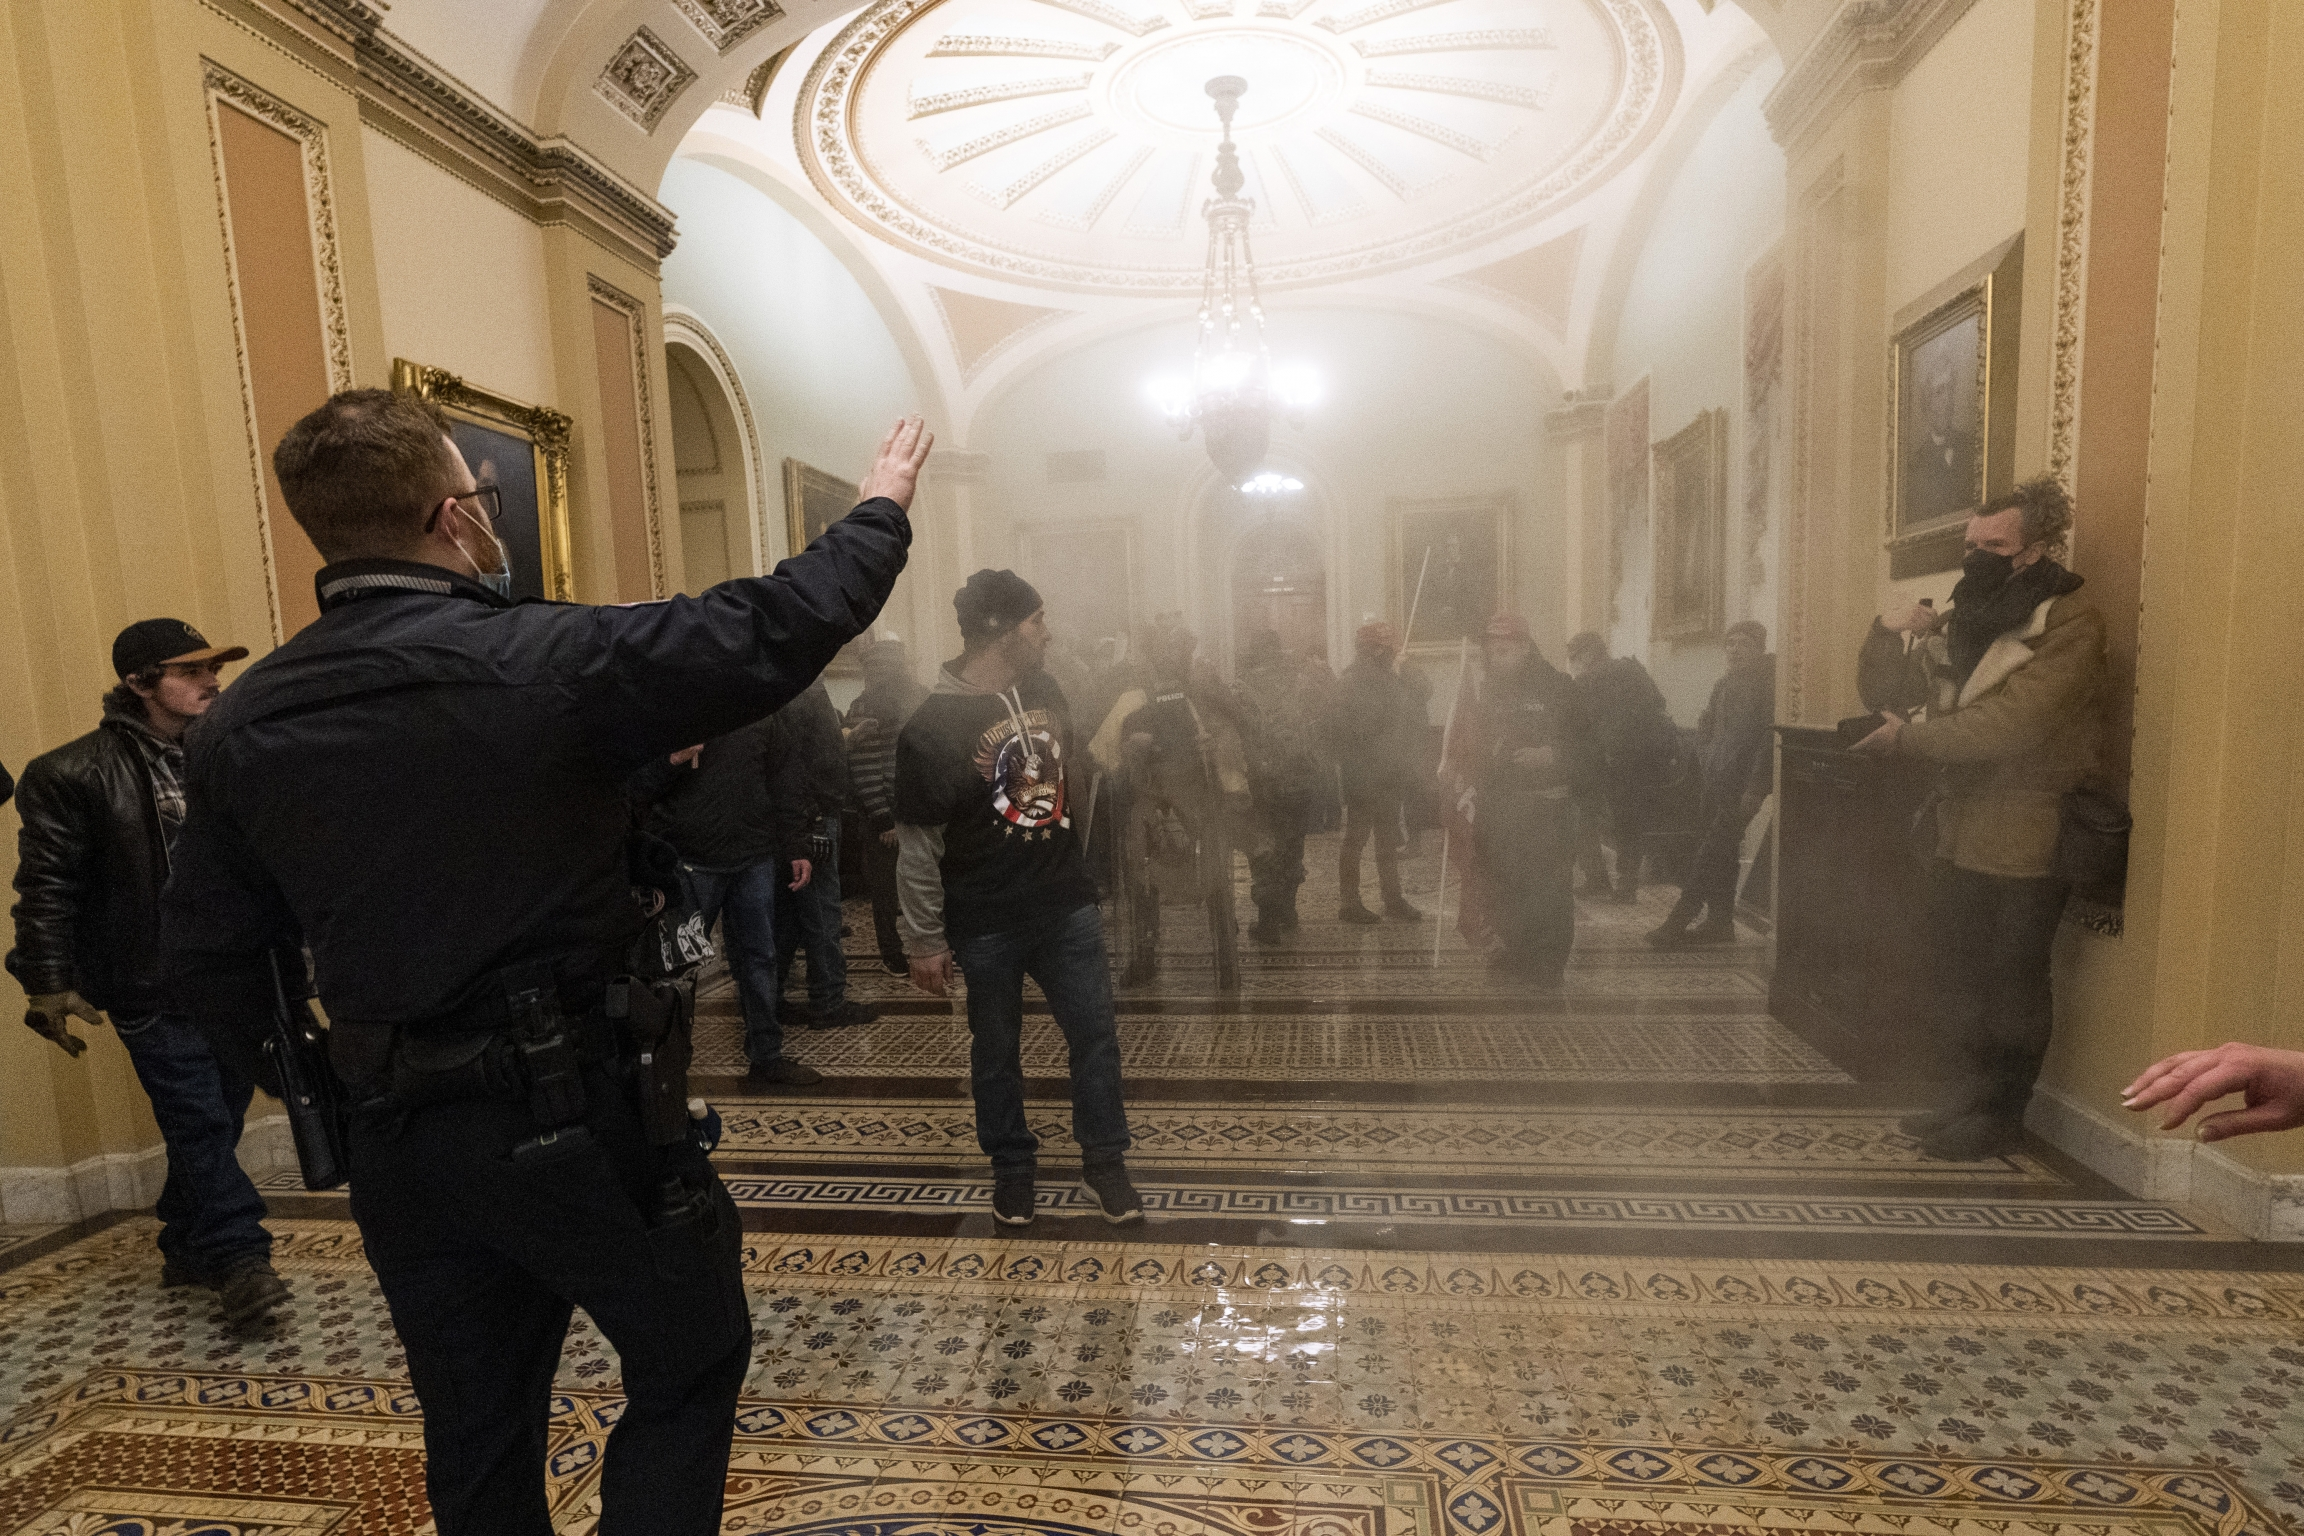 Smoke fills the walkway outside the Senate Chamber as supporters of President Donald Trump are confronted by US Capitol Police